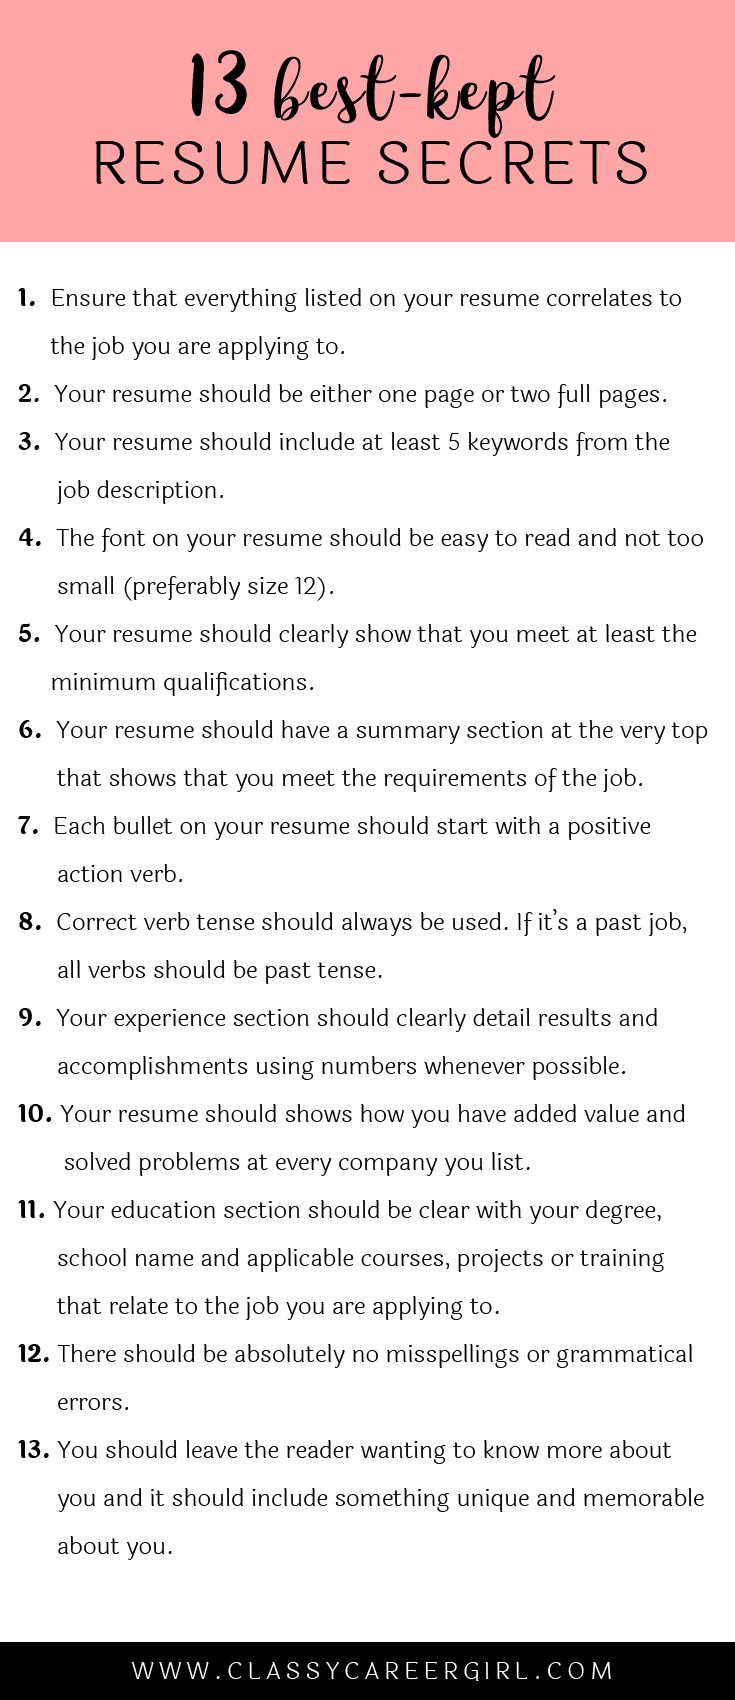 Opposenewapstandardsus  Ravishing  Ideas About Resume On Pinterest  Cv Format Resume Cv And  With Licious Some Hiring Managers Will Toss Your Resume Out If You Dont Know These  With Attractive Sample Resume For Teachers Also Student Teaching Resume In Addition Example Cover Letters For Resume And Owl Purdue Resume As Well As Professional Resume Templates Word Additionally Merchandiser Resume From Pinterestcom With Opposenewapstandardsus  Licious  Ideas About Resume On Pinterest  Cv Format Resume Cv And  With Attractive Some Hiring Managers Will Toss Your Resume Out If You Dont Know These  And Ravishing Sample Resume For Teachers Also Student Teaching Resume In Addition Example Cover Letters For Resume From Pinterestcom